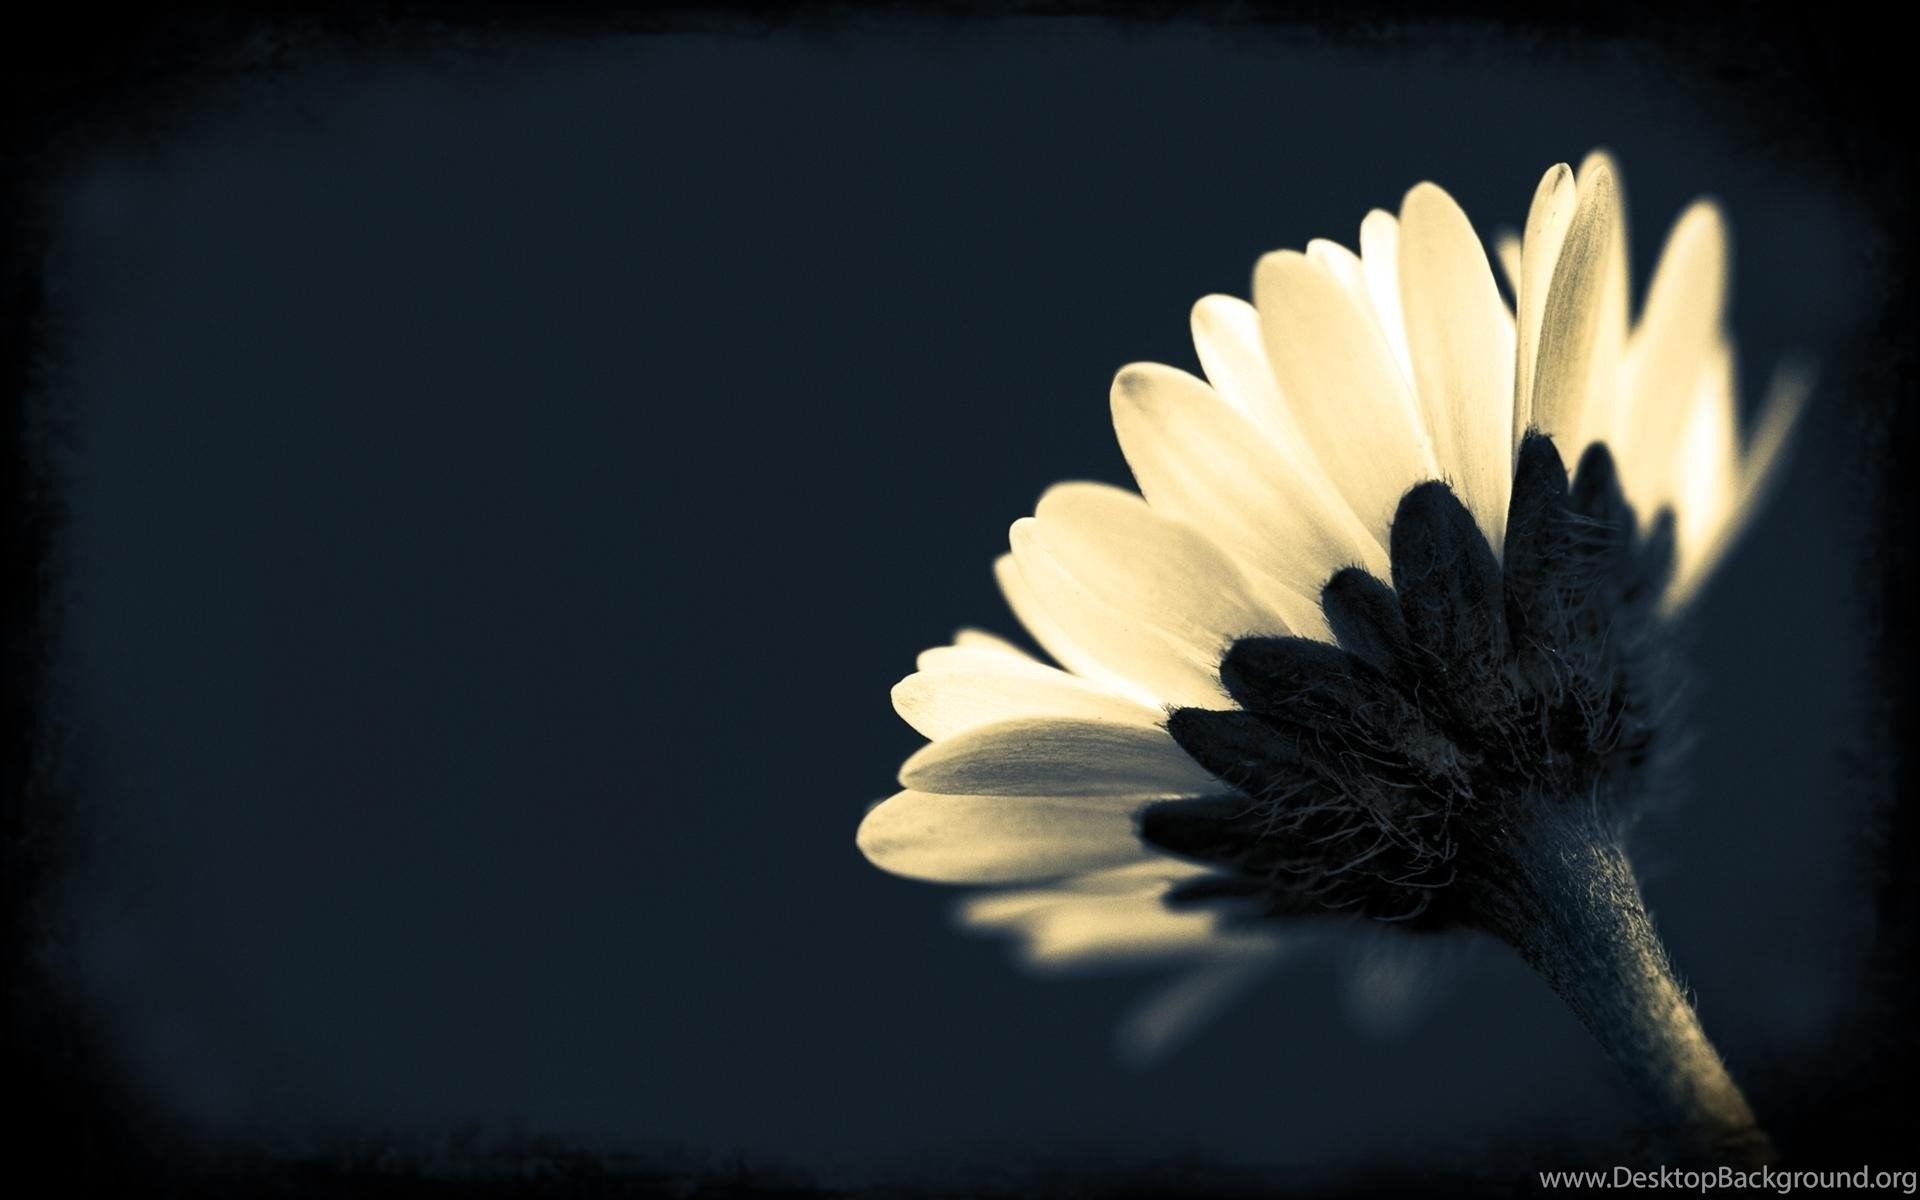 Black And White Flowers Wallpapers Hd Wallpapers Lovely Desktop